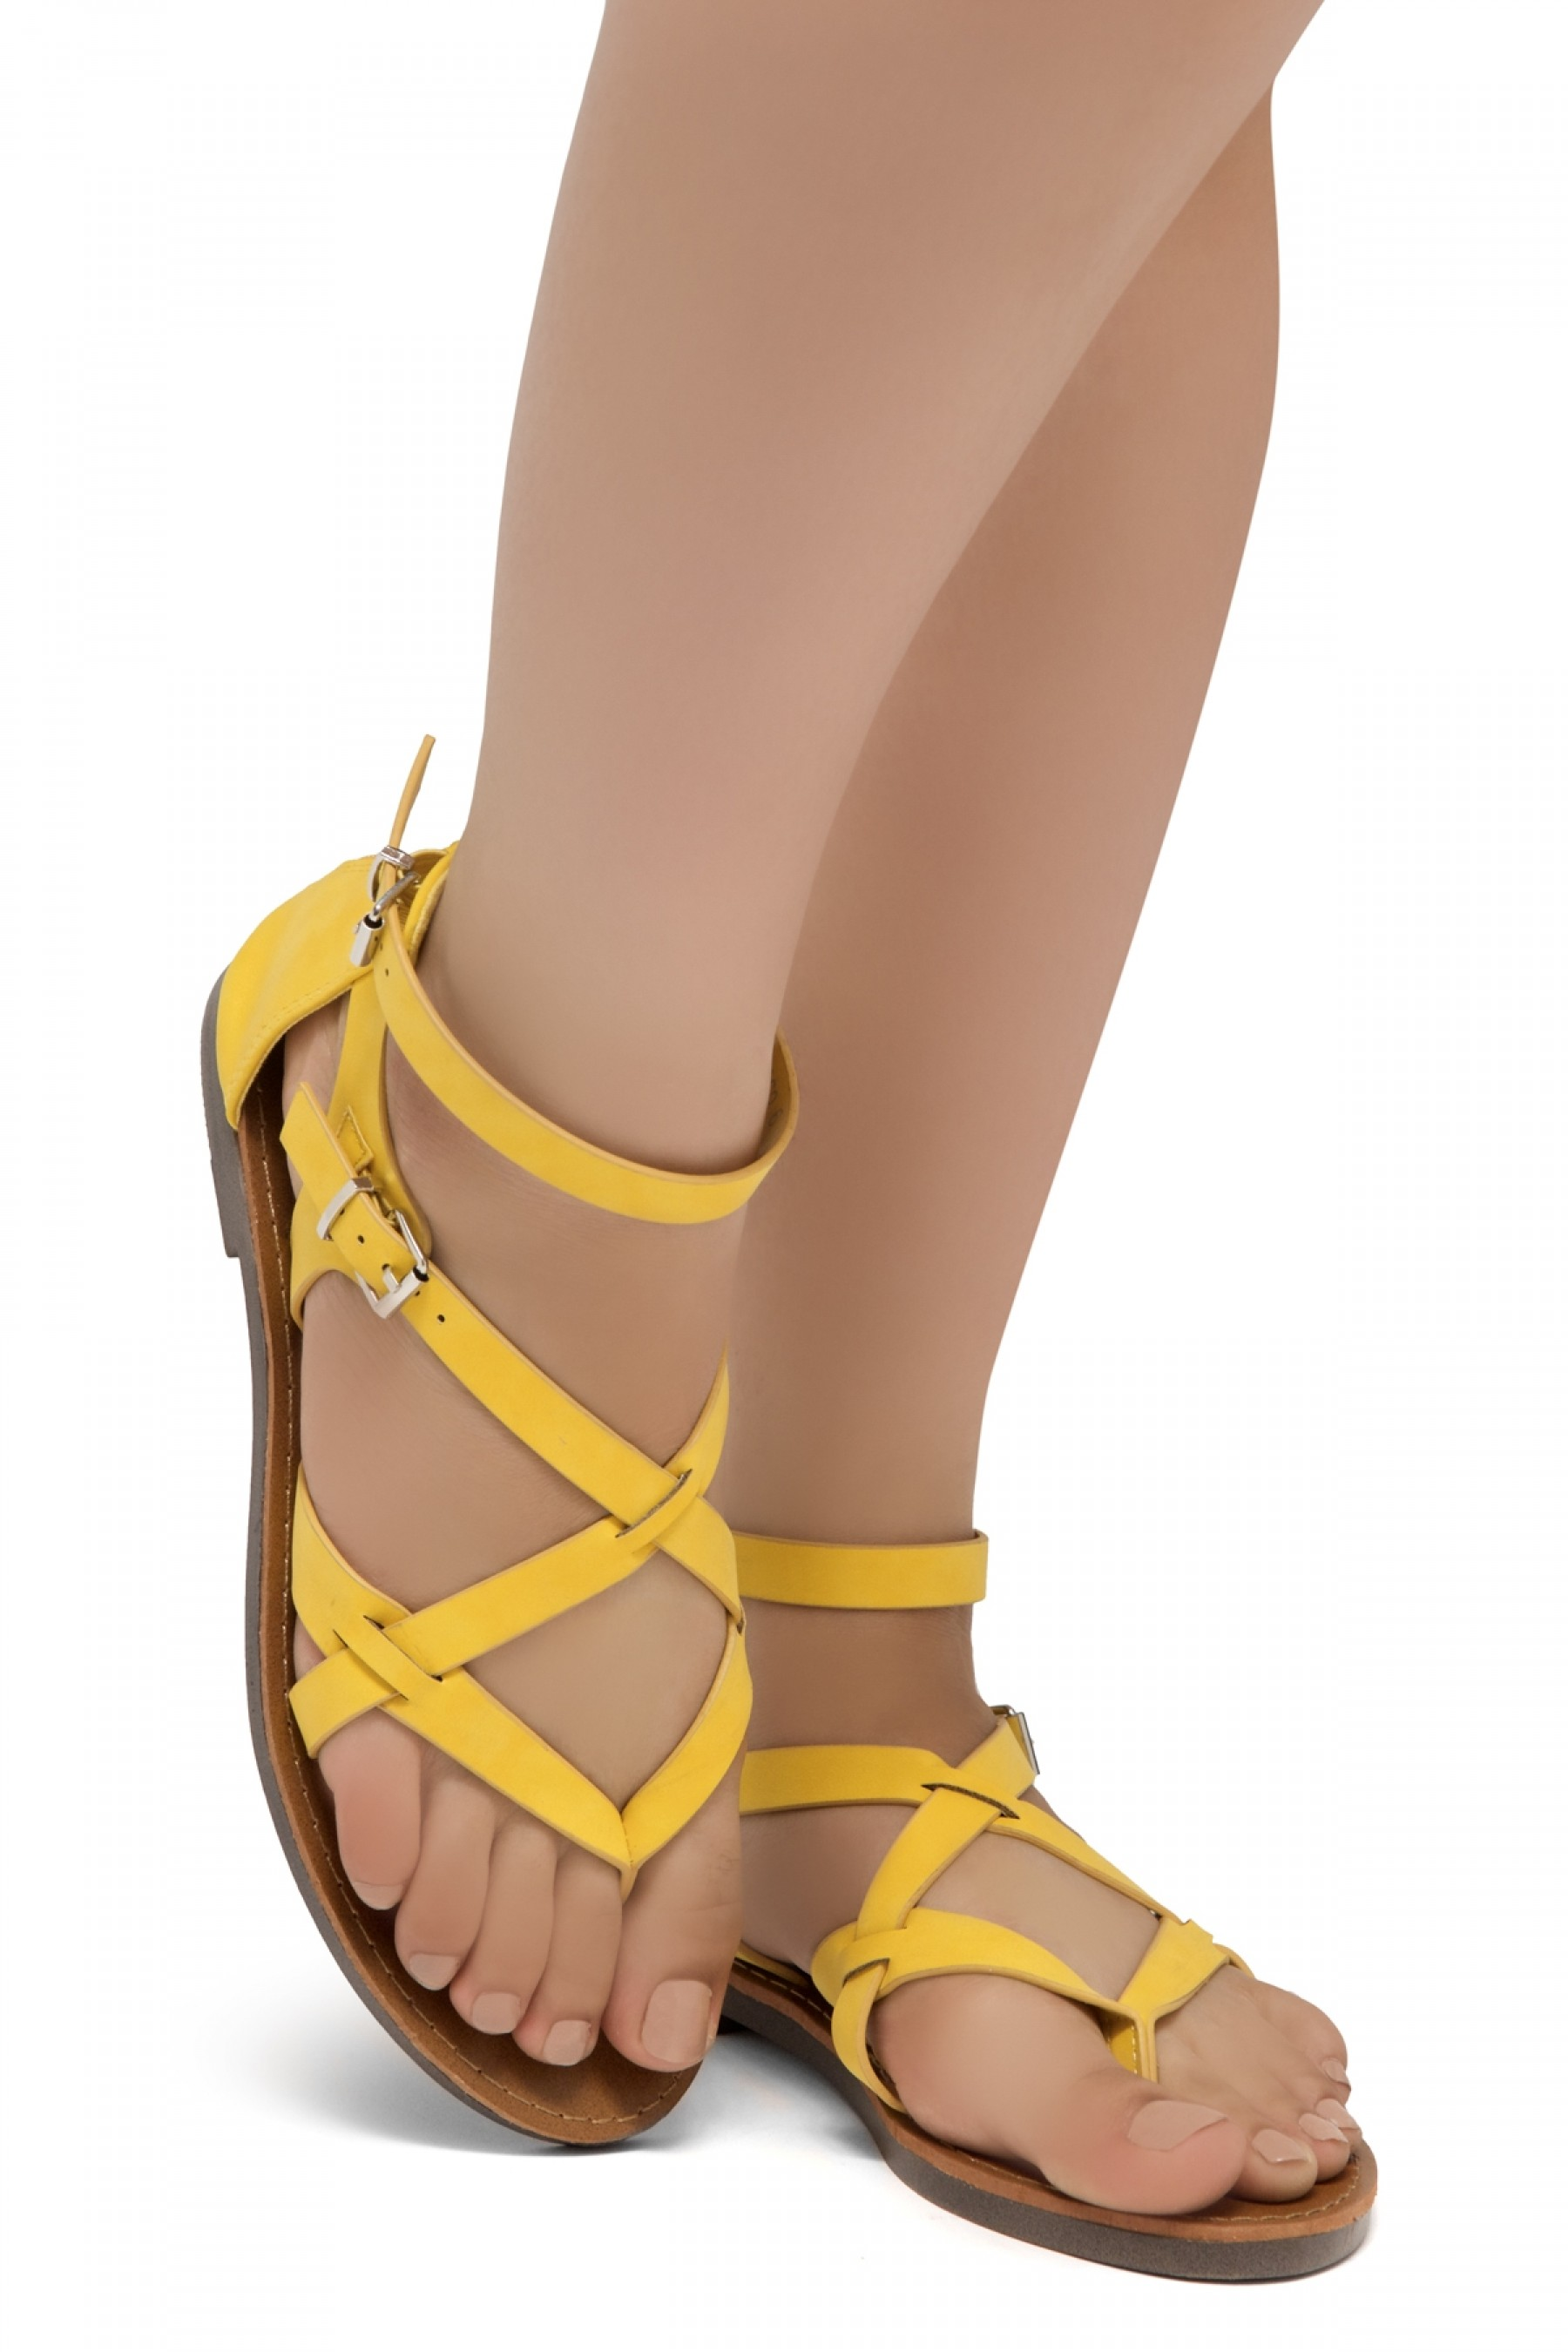 ShoeLand SL-Monaco Women's Open Toes Gladiator Flat Sandals Ankle Strap Thong Shoes(Yellow)